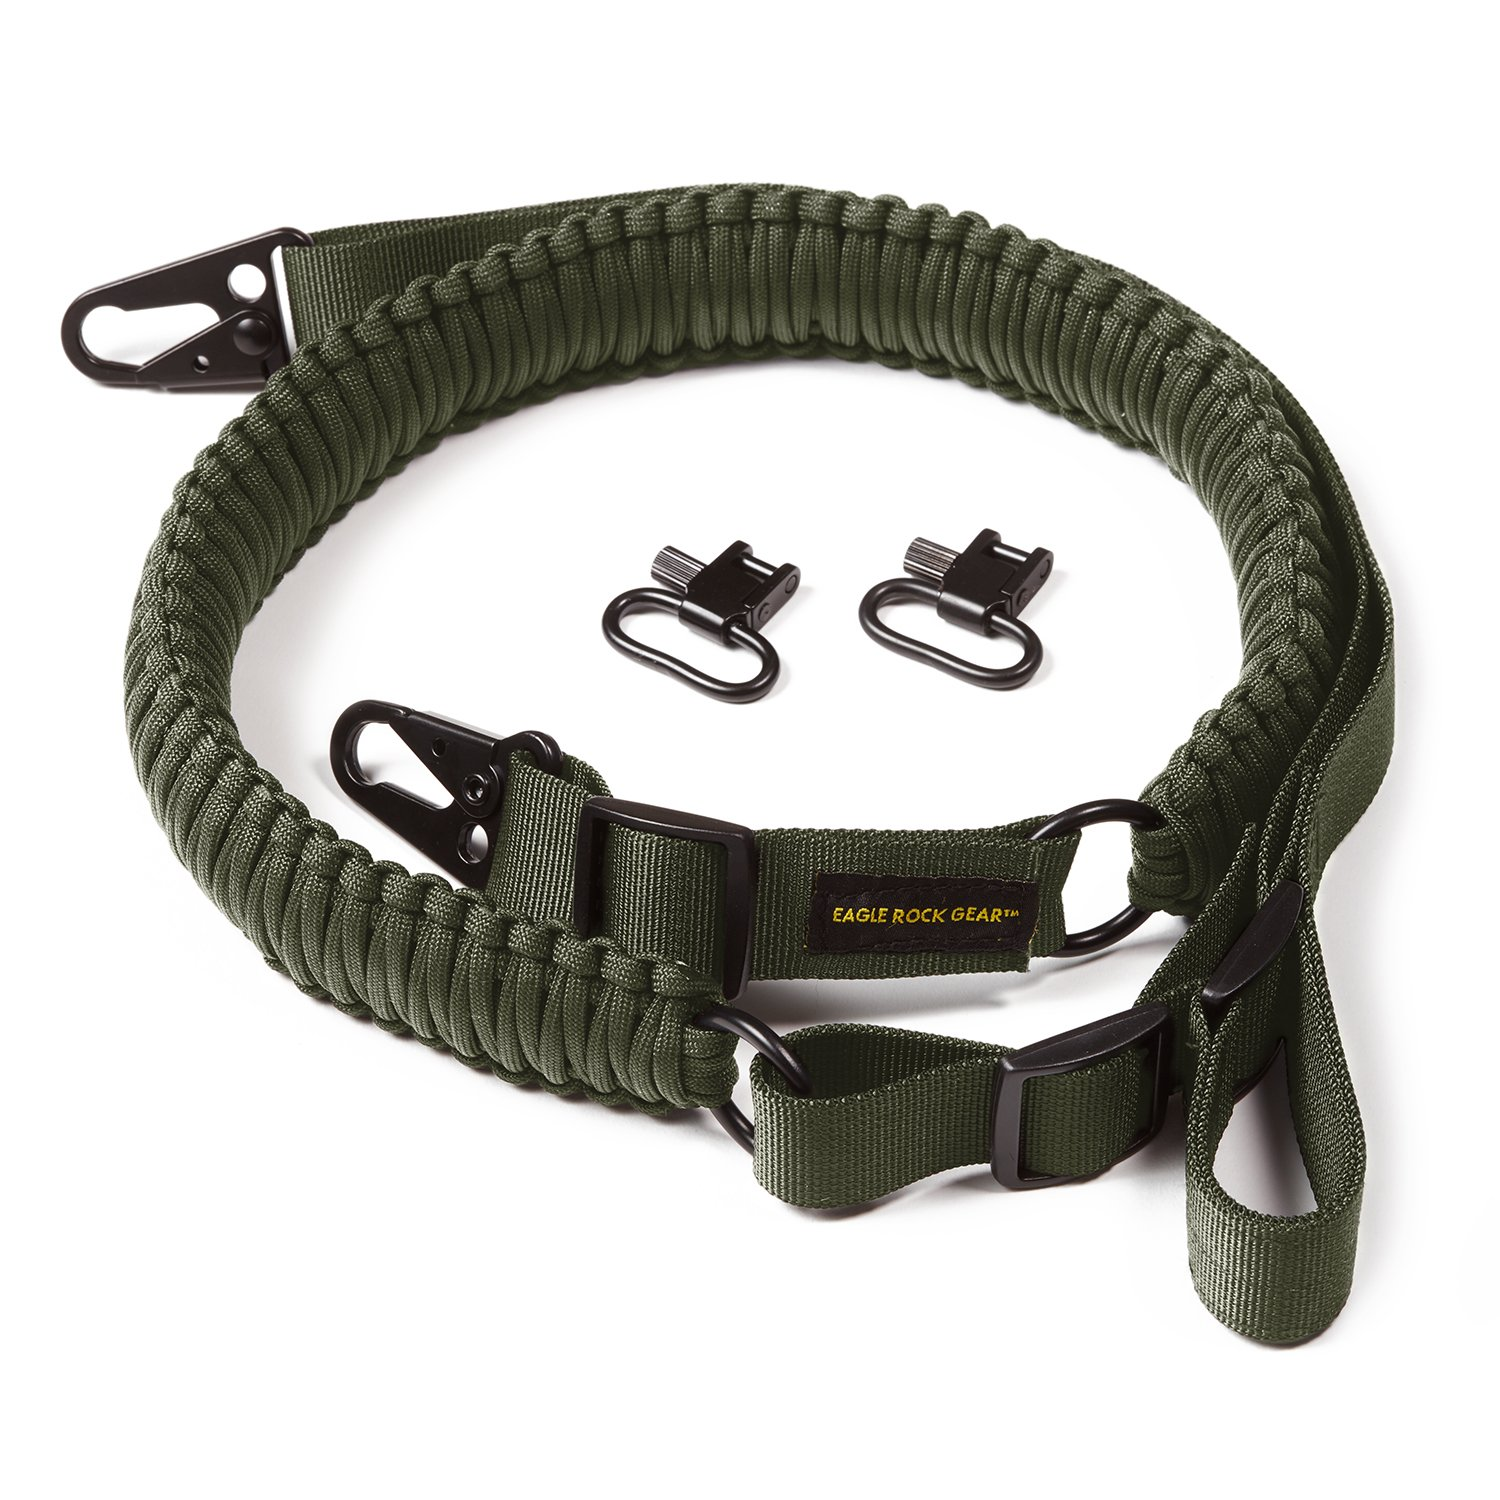 Eagle Rock Gear 550 Paracord 2 Point Gun Sling for Rifles, Shotguns, Crossbows, Airsoft - with Easy Adjustable Strap, HK Clips, Swivels (Army Green) by Eagle Rock Gear